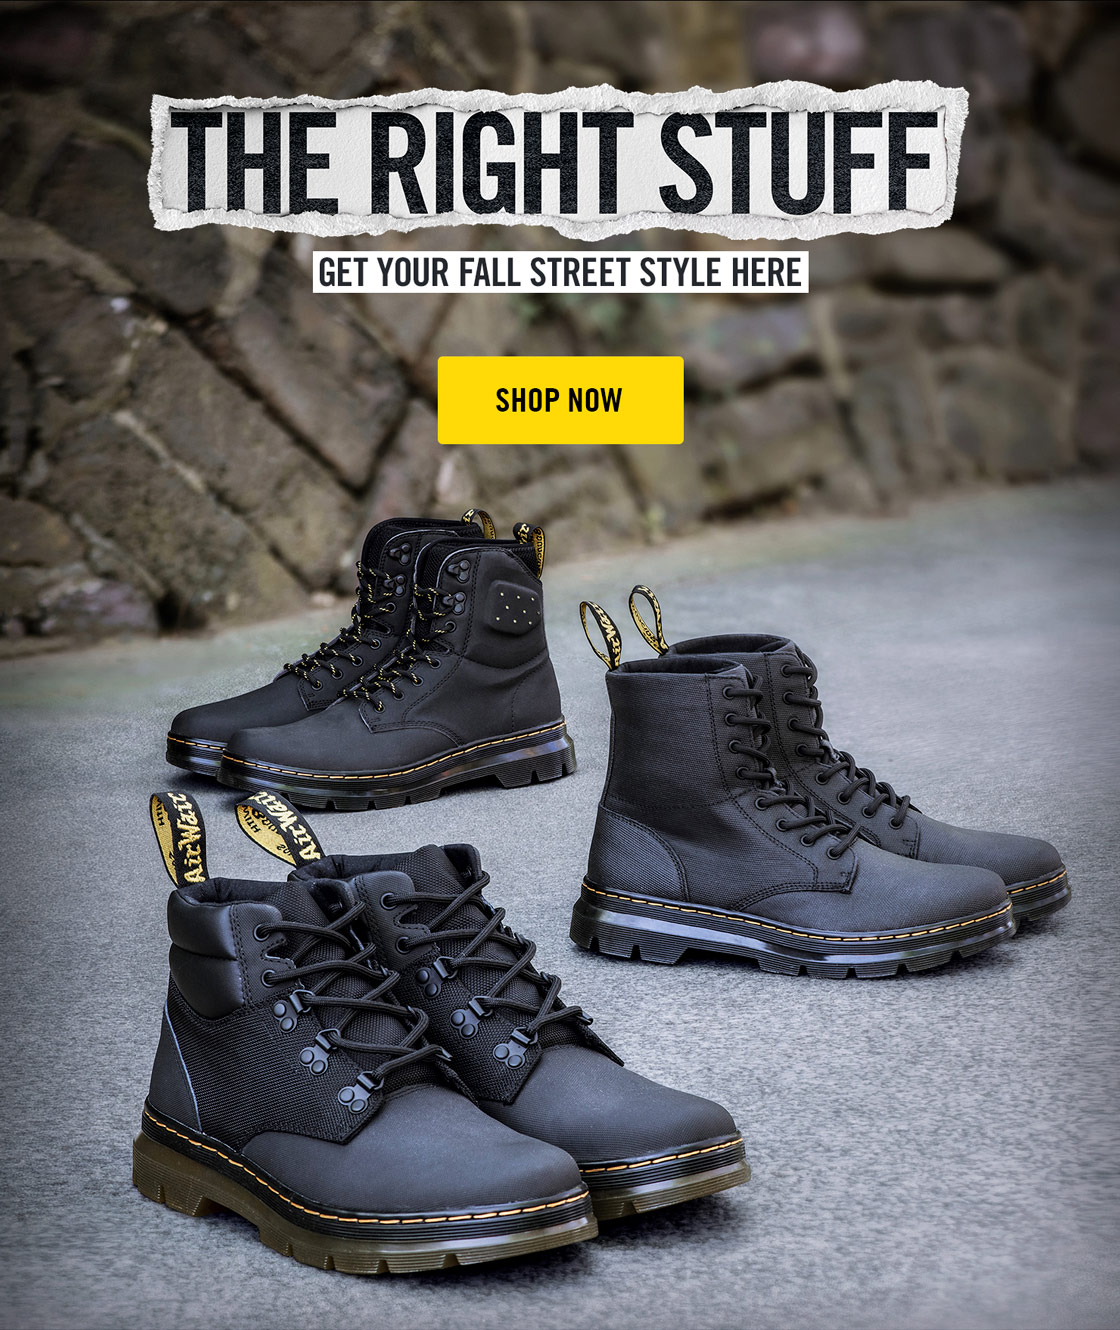 d6ca6907a3f Dr. Martens: Fresh, rugged street style | Milled